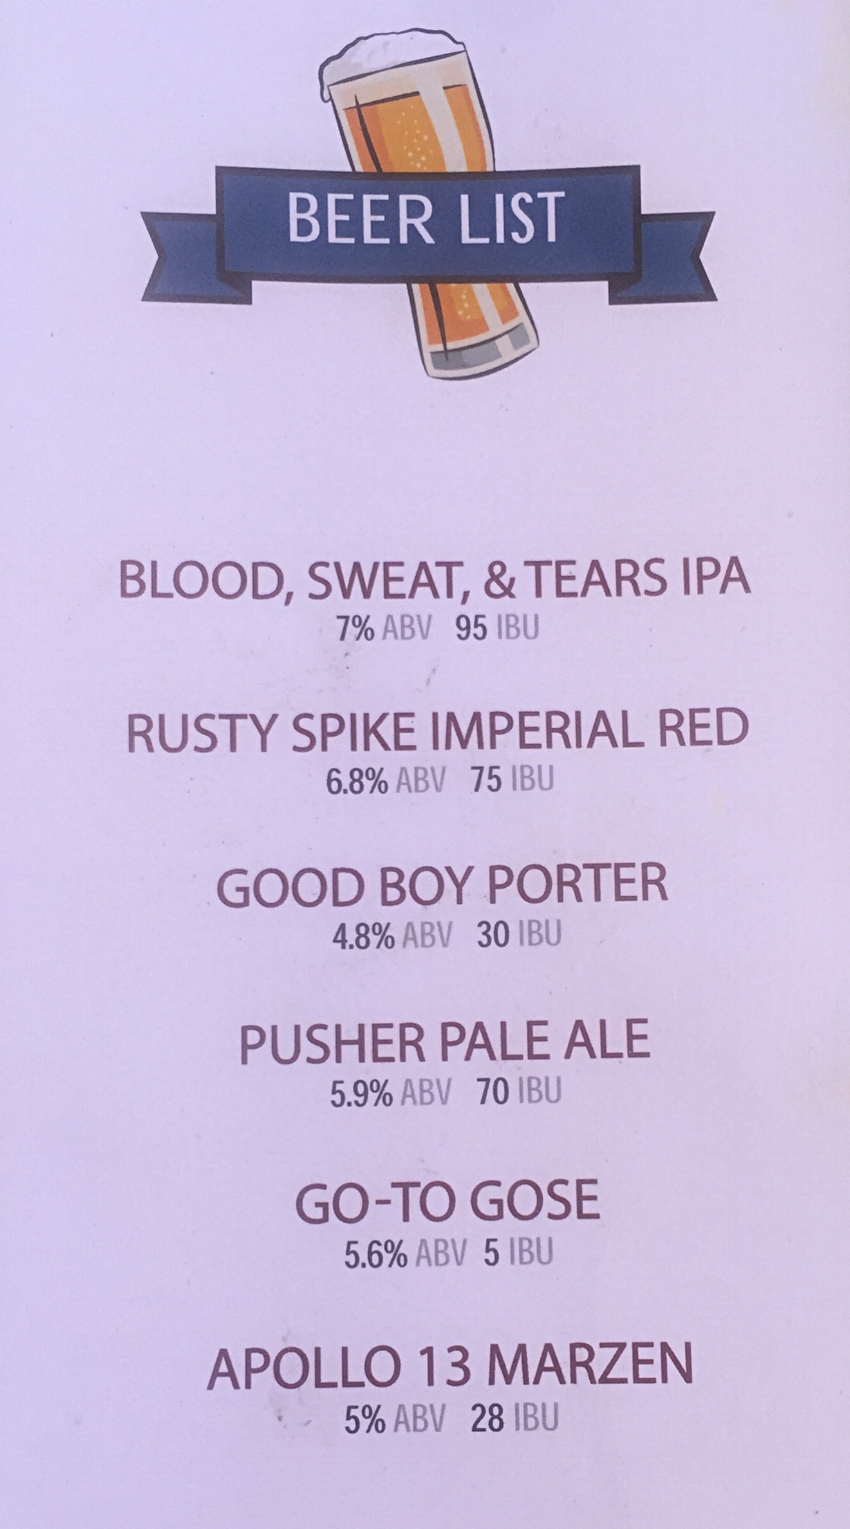 The Beer menu changes with the season. There is always something new to try.